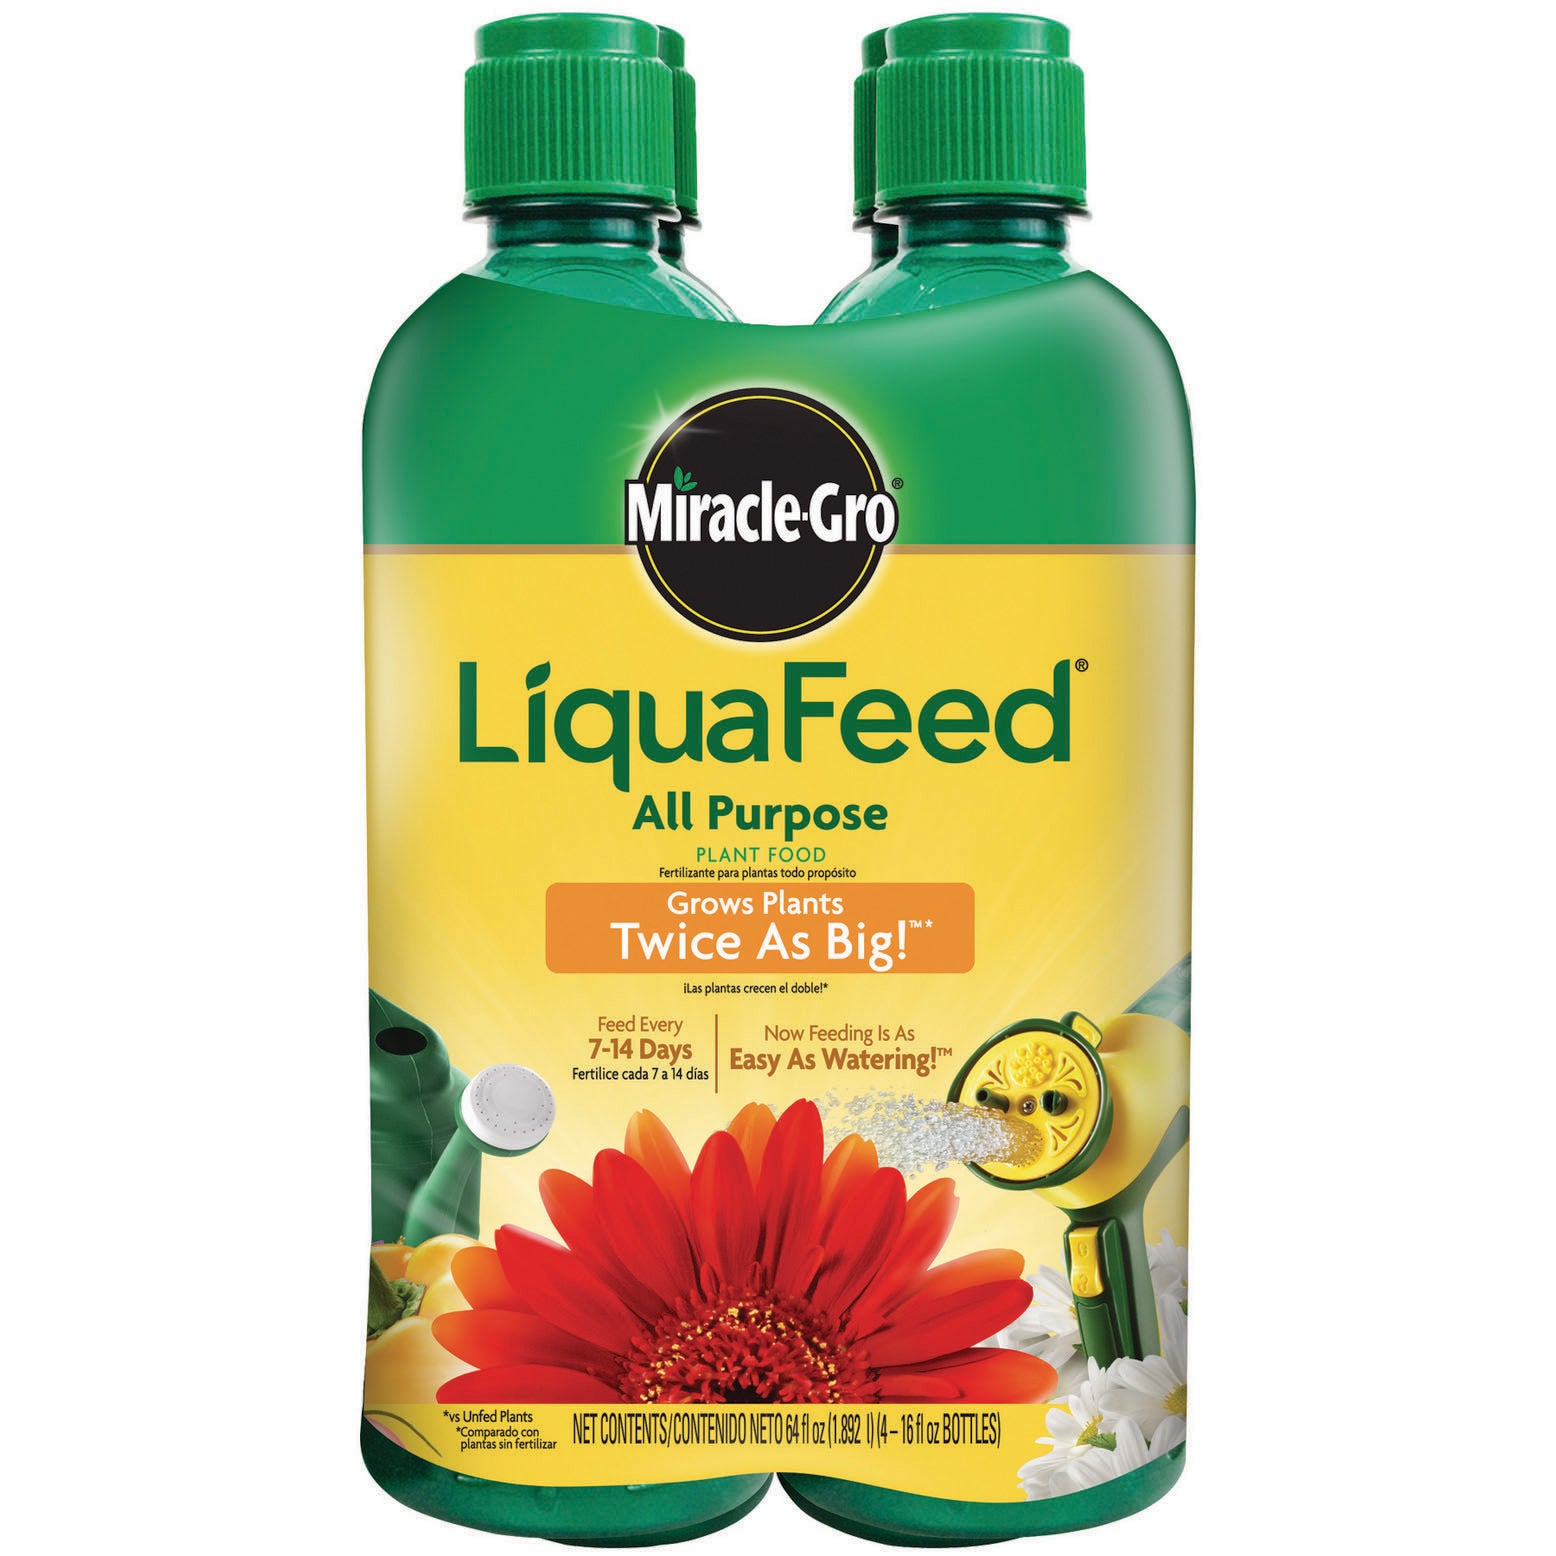 Miracle Gro 1004325 16-Ounce LiquaFeed Plant Food Refill ...